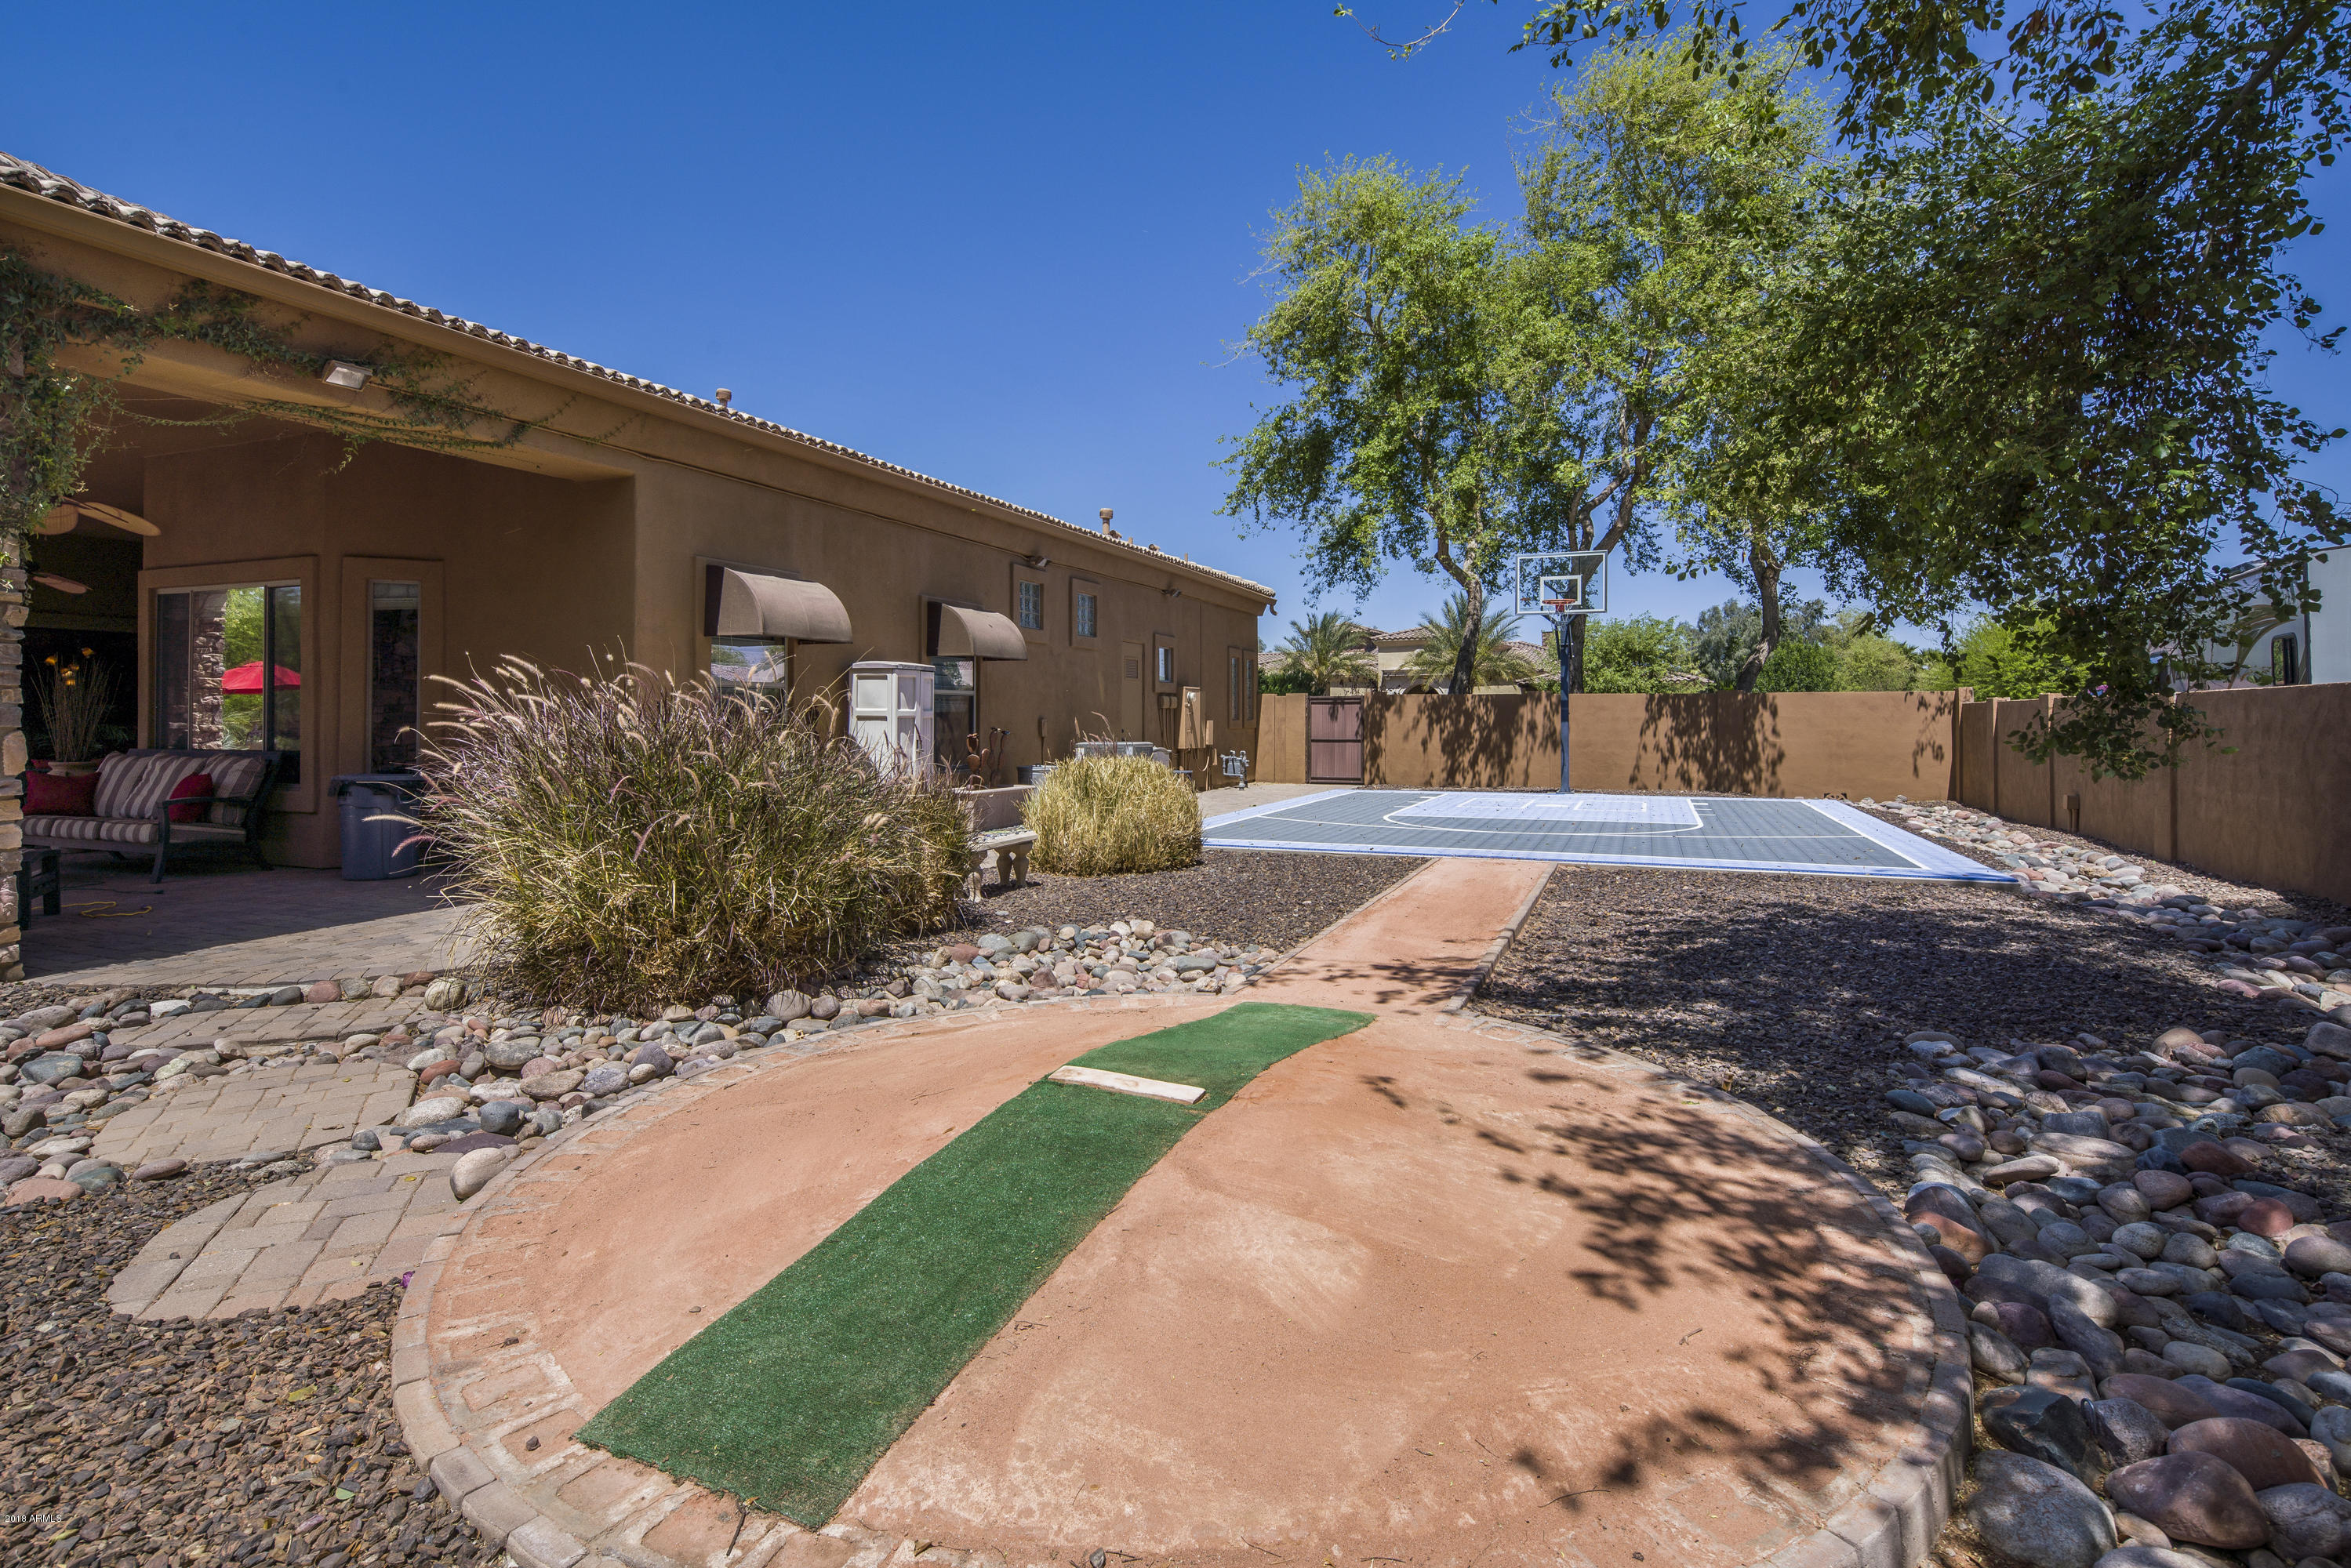 MLS 5754129 3865 E CHERRY HILL Drive, Gilbert, AZ Gilbert AZ Gated